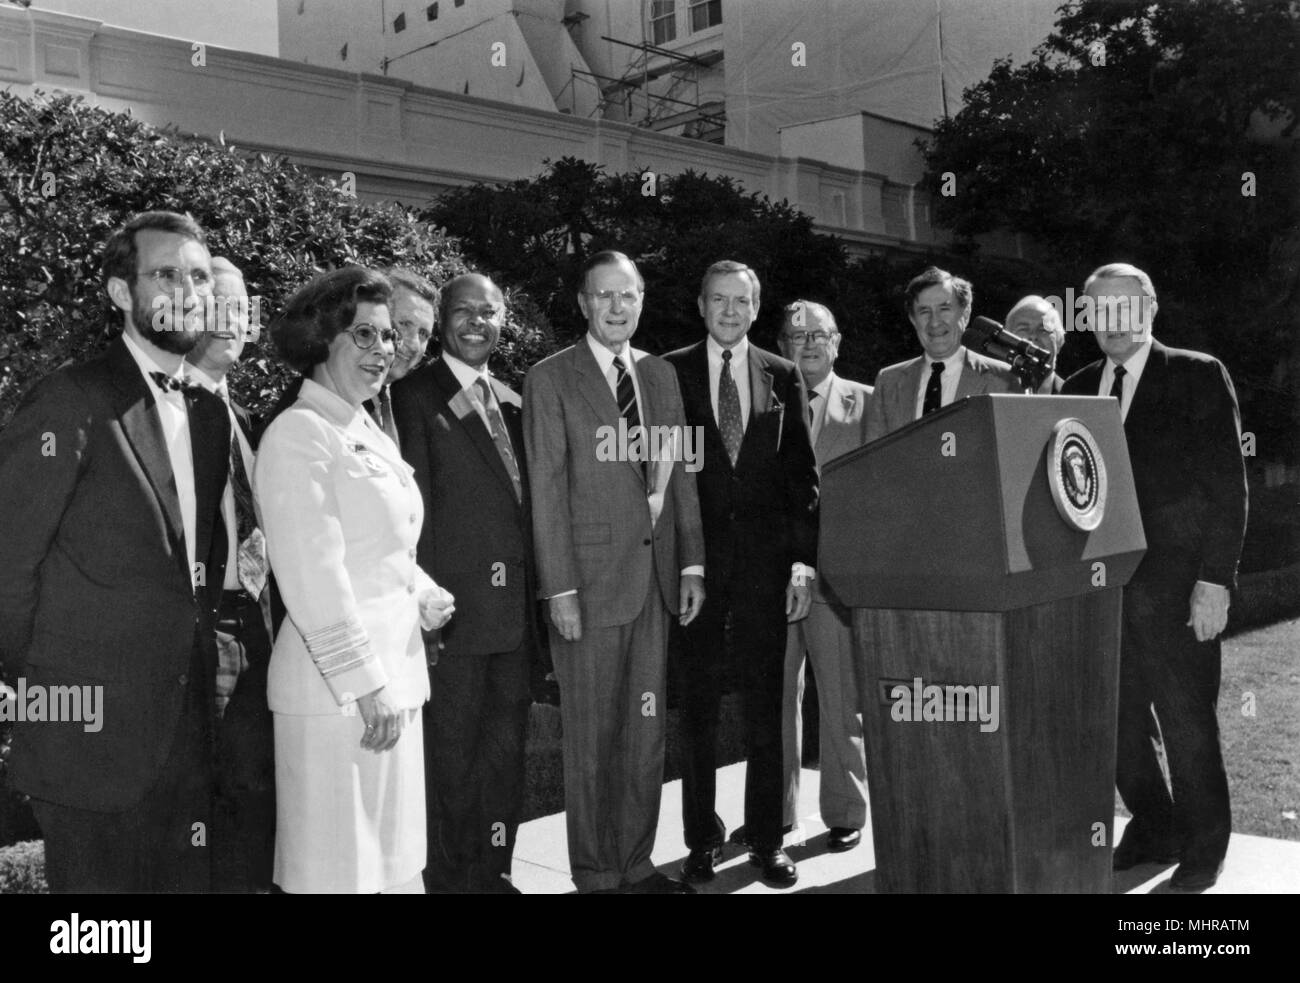 Centers for Disease Control (CDC) officials in visit to the White House, CDC Director at that time, William L. Roper, former Director, James O, 1991. Mason, Surgeon General, Antonia C. Novello, Senator Arlen Specter, Health and Human Services Secretary, Louis Sullivan, President George H.W. Bush, Senator Orrin Hatch, Congressman Jamie L. Whitten, Senator John H. Chaffee, Congressman Norman F. Lent, and Senator Dale L. Bumpers. () - Stock Image